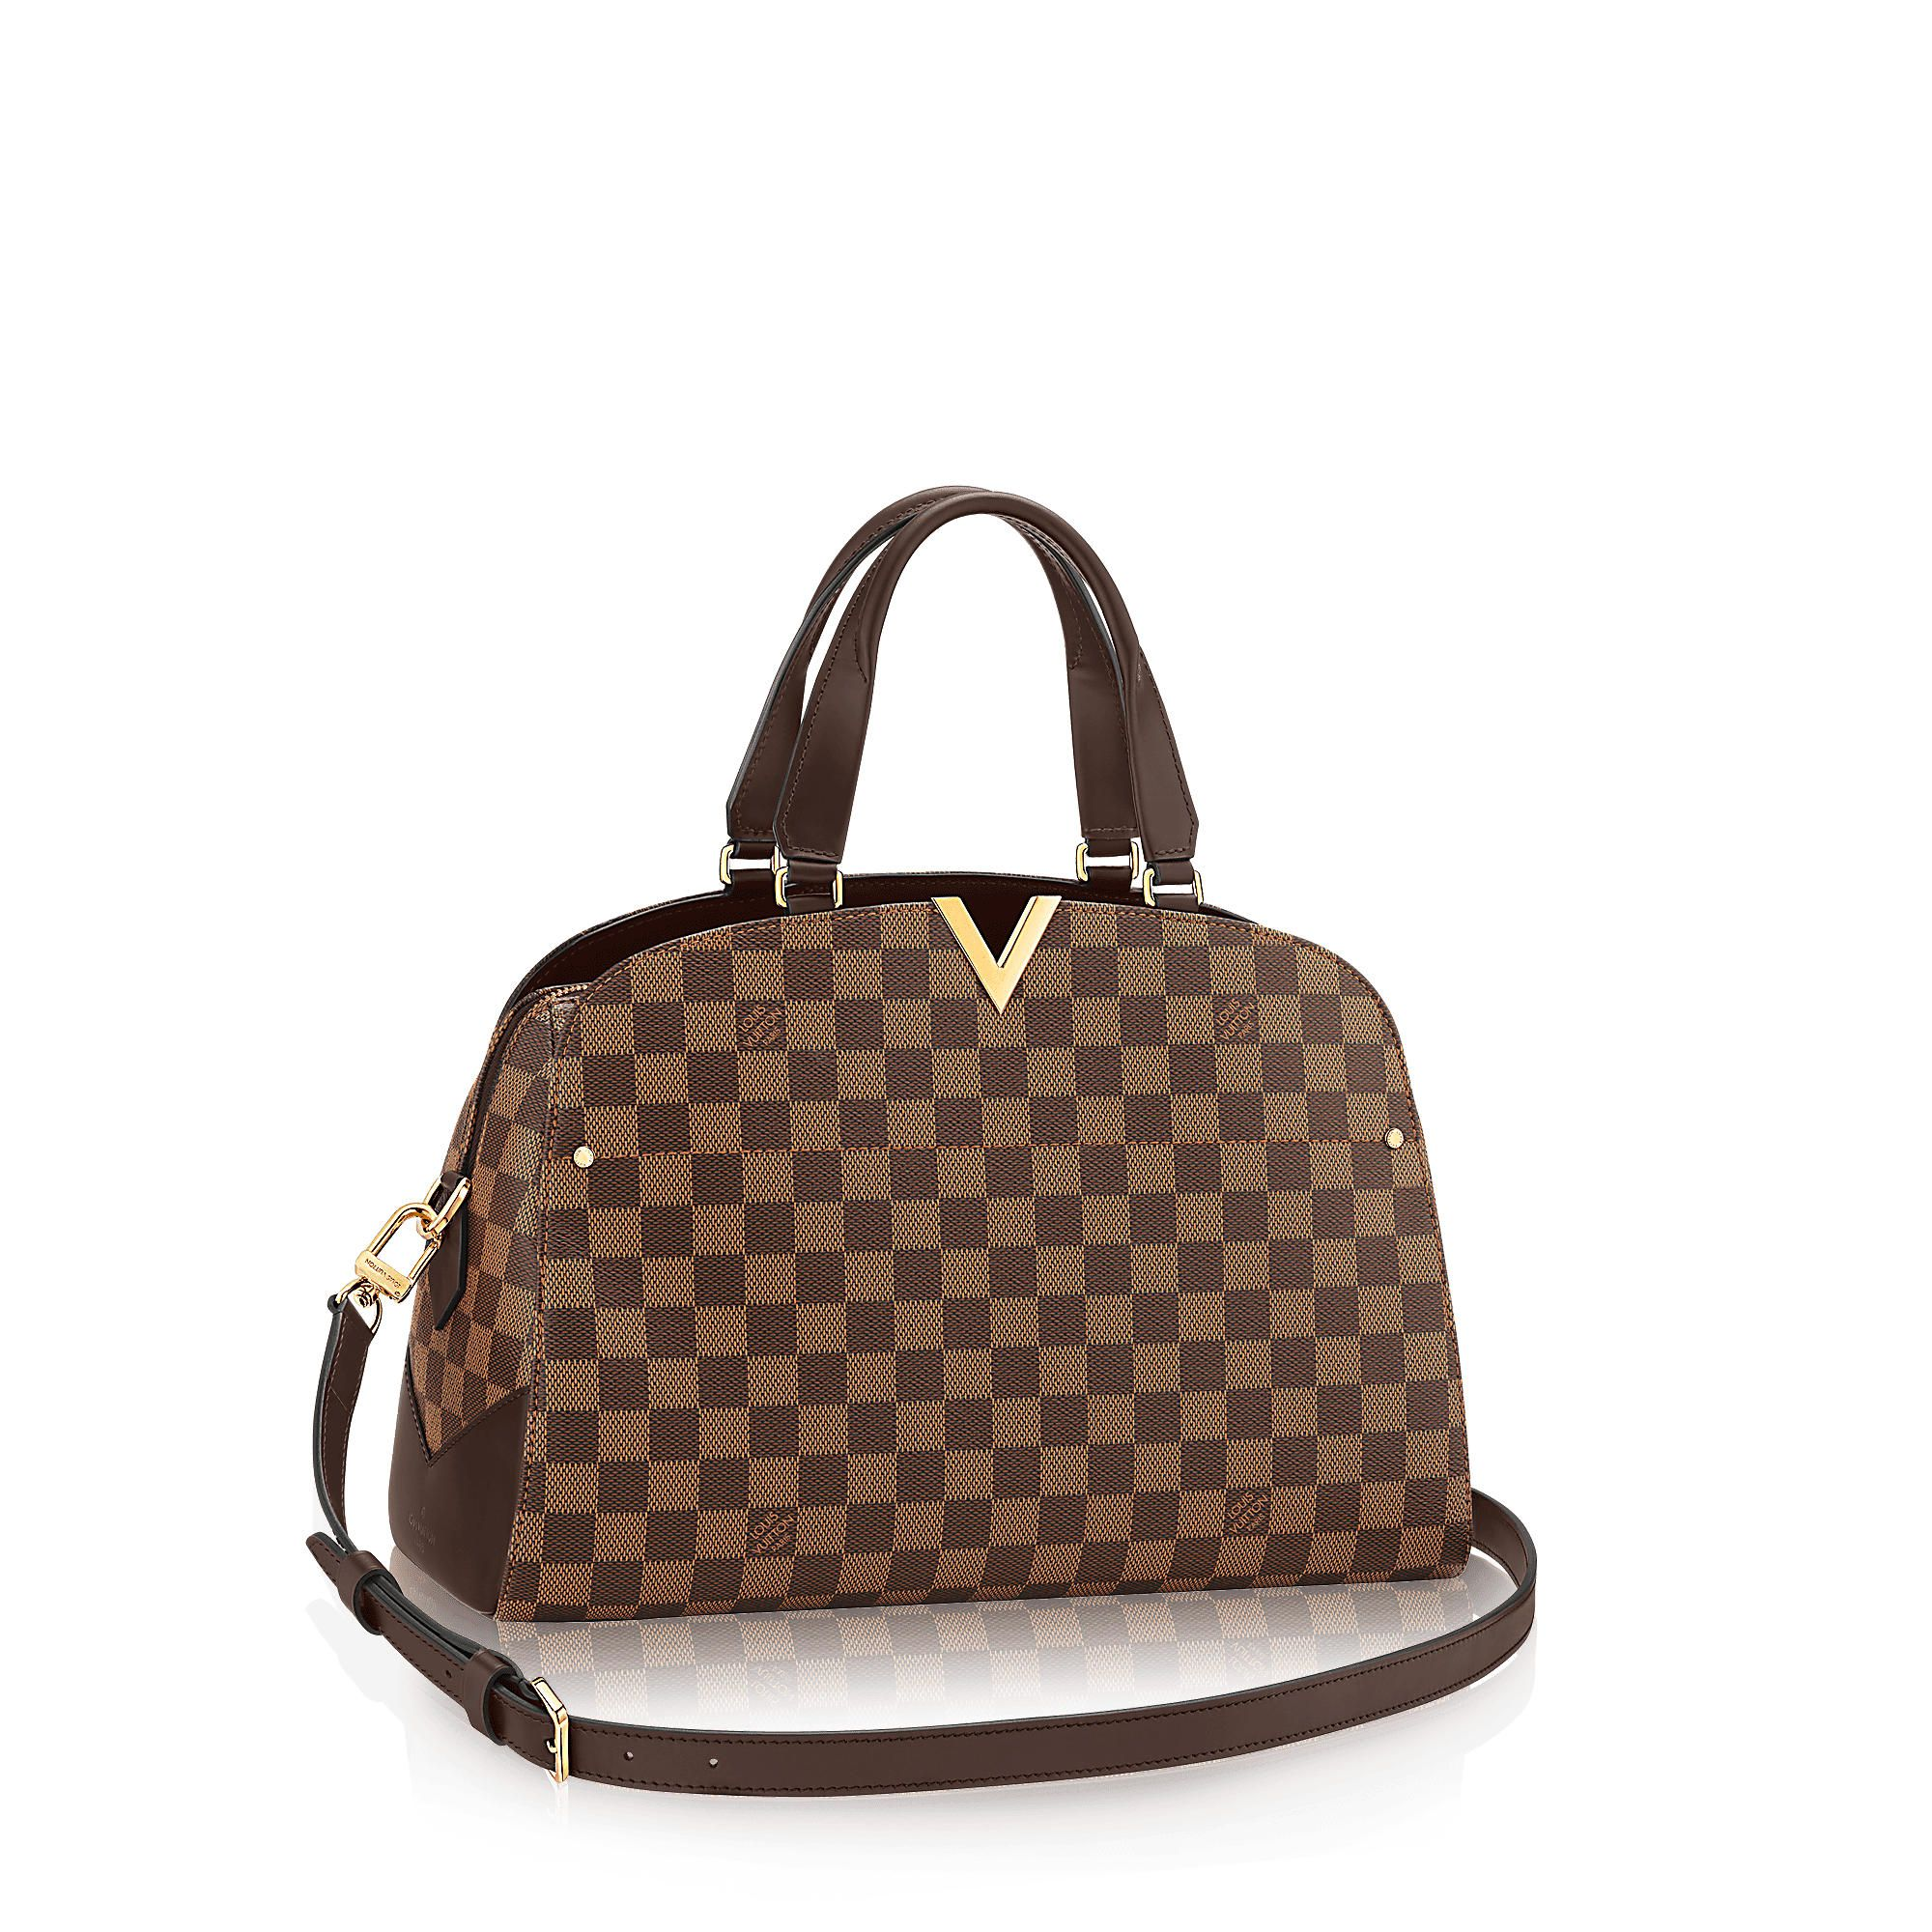 d46daac3c6a2 Women s Designer Leather   Canvas Handbags - Louis Vuitton®